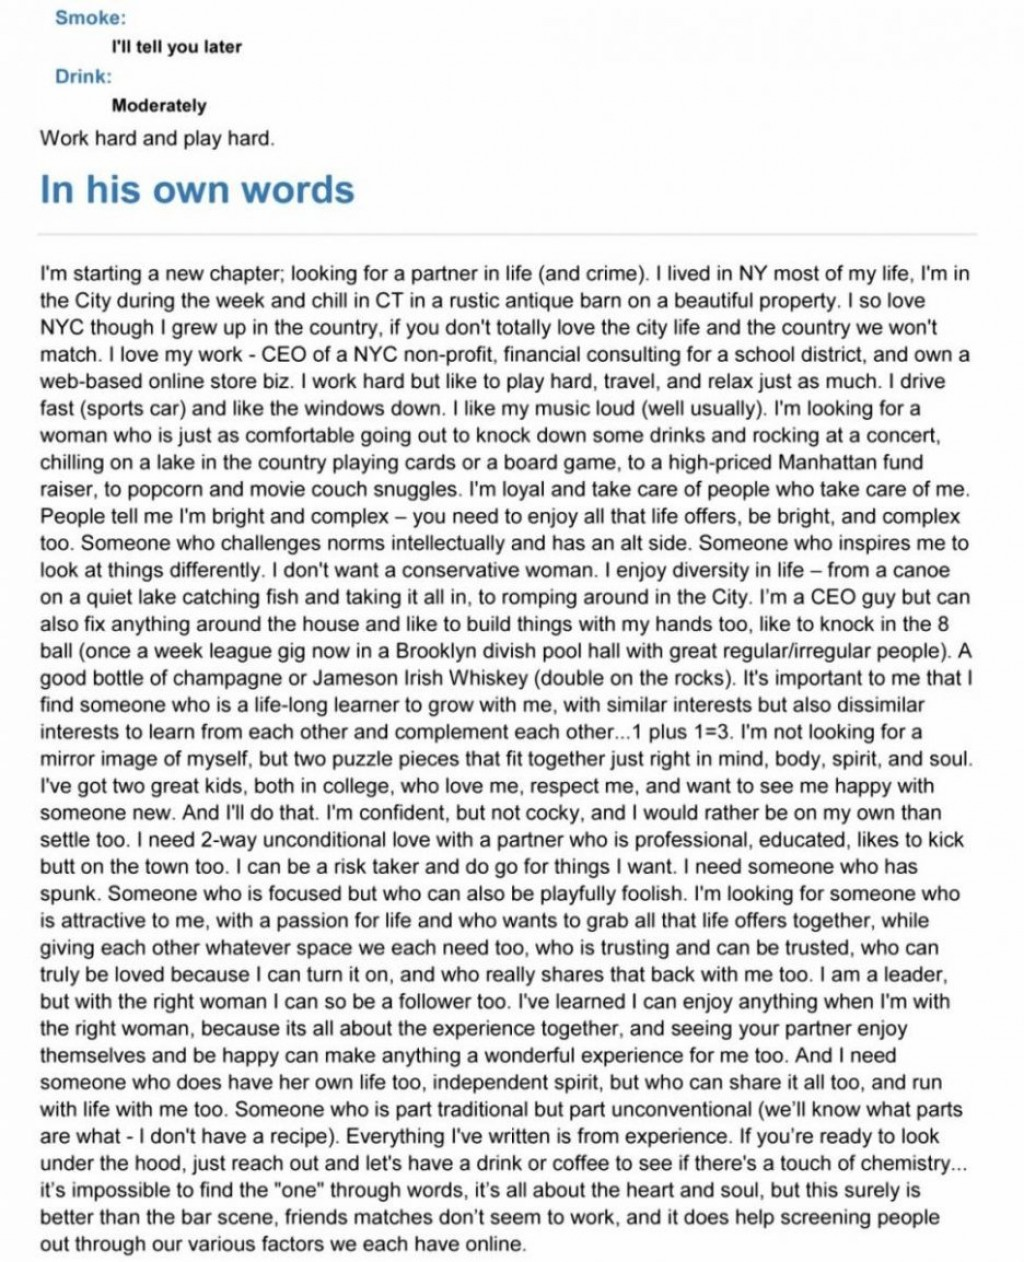 015 Profile Essay On Person Galante Web Writing Read Essays Famouss Of Outline Homeless 936x1154 Staggering A Famous Example How To Start Large